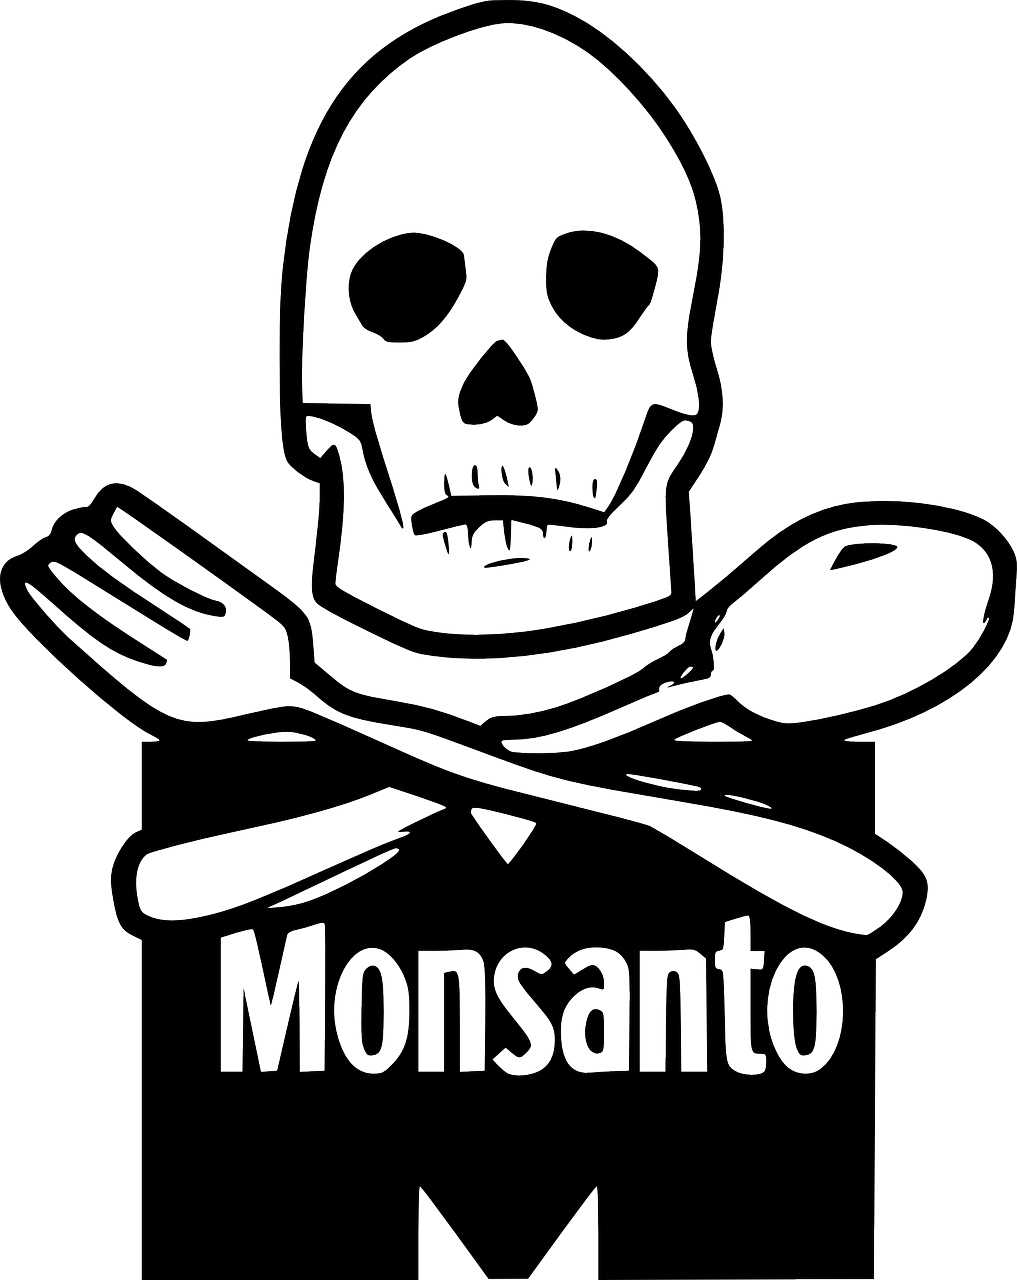 Justice clipart human right. Monsanto lobbying an attack